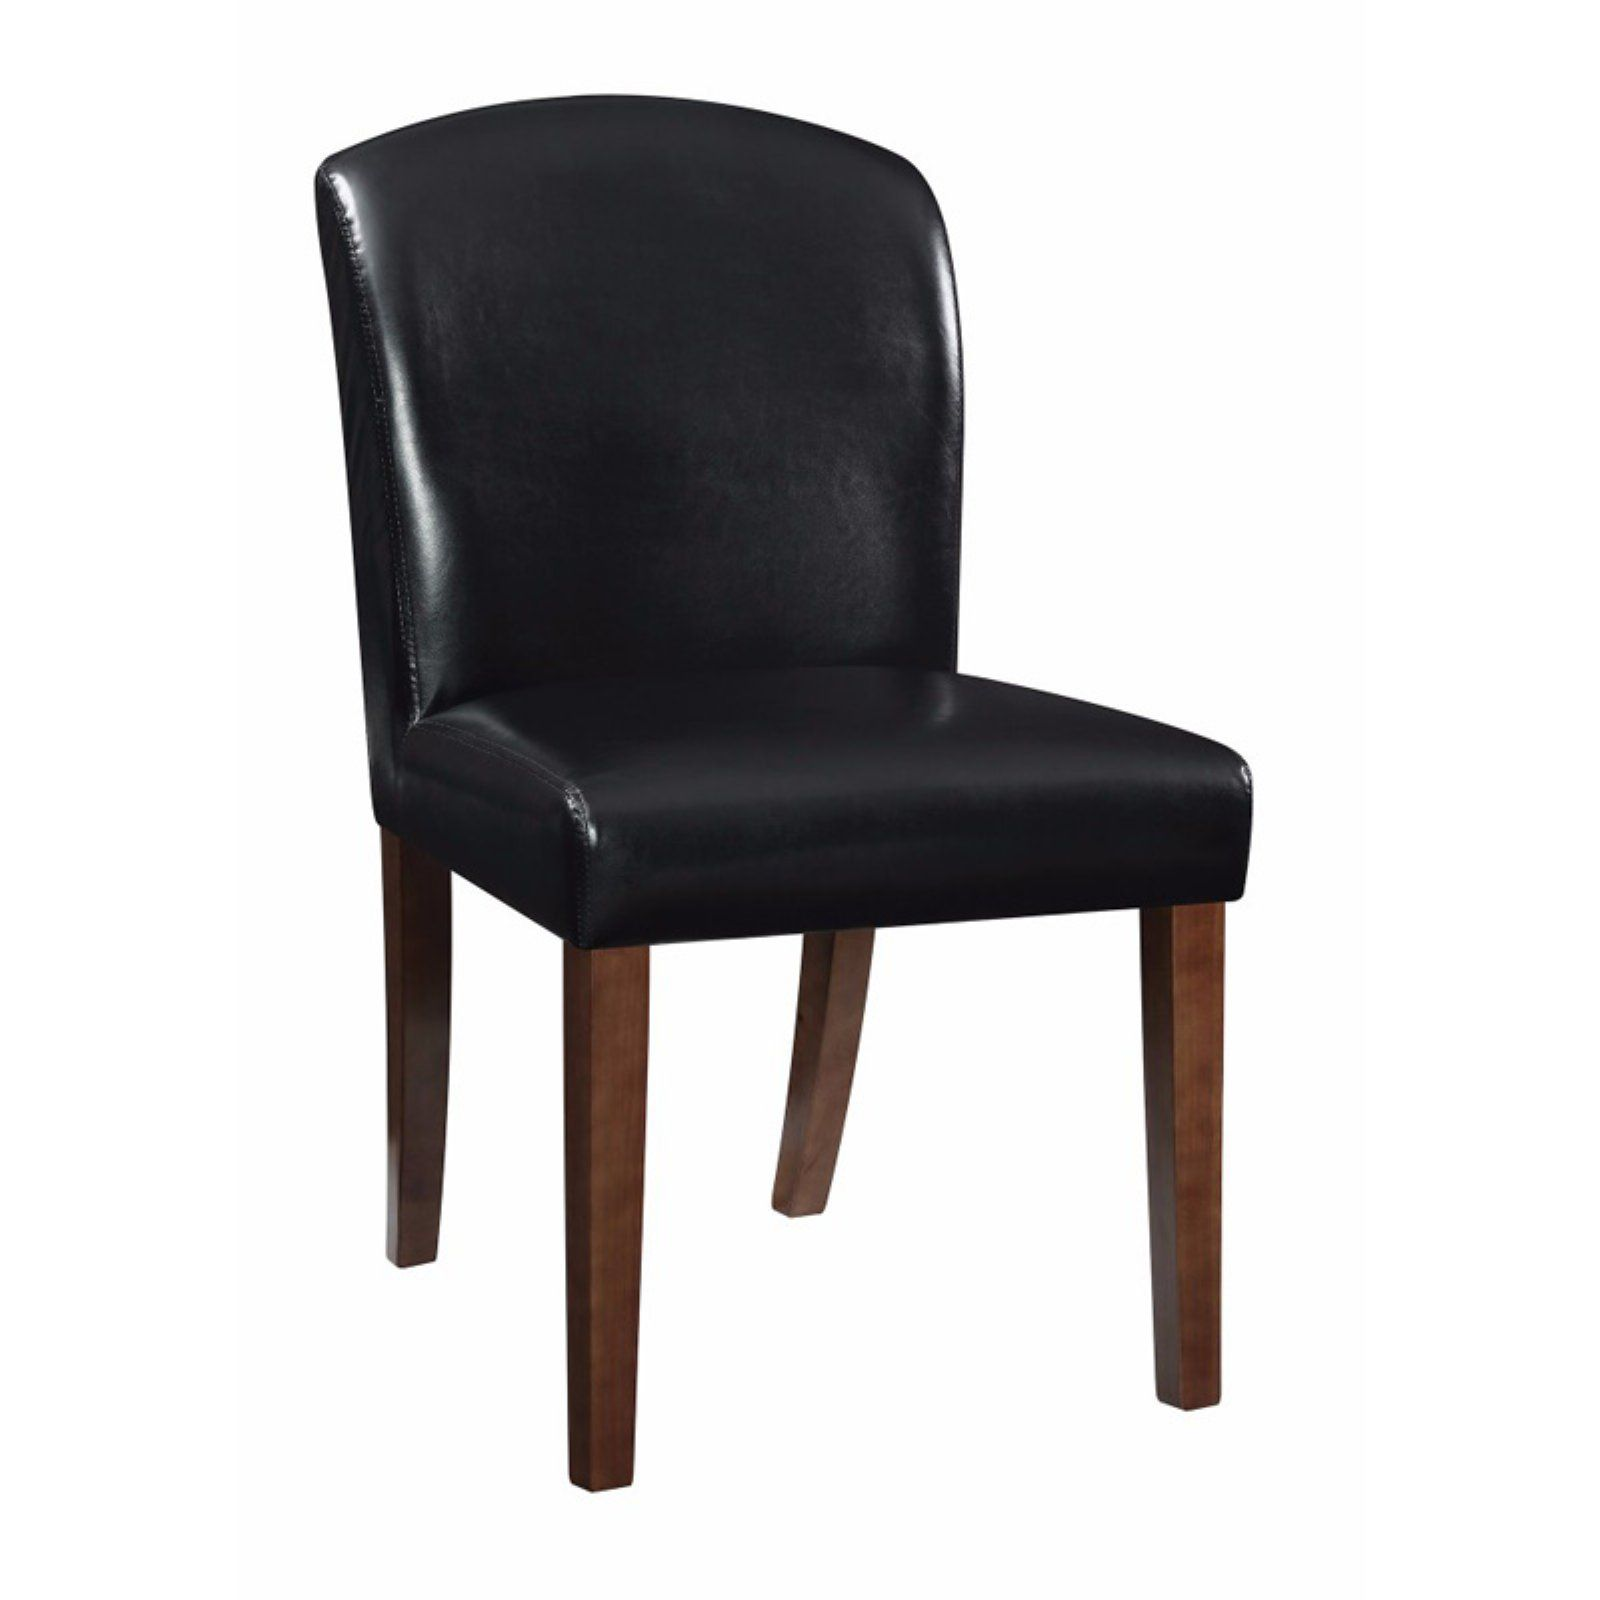 Faux Leather Dining Chairs Virco Free Shipping Benzara Side Chair Set Of 2 In 2019 Products